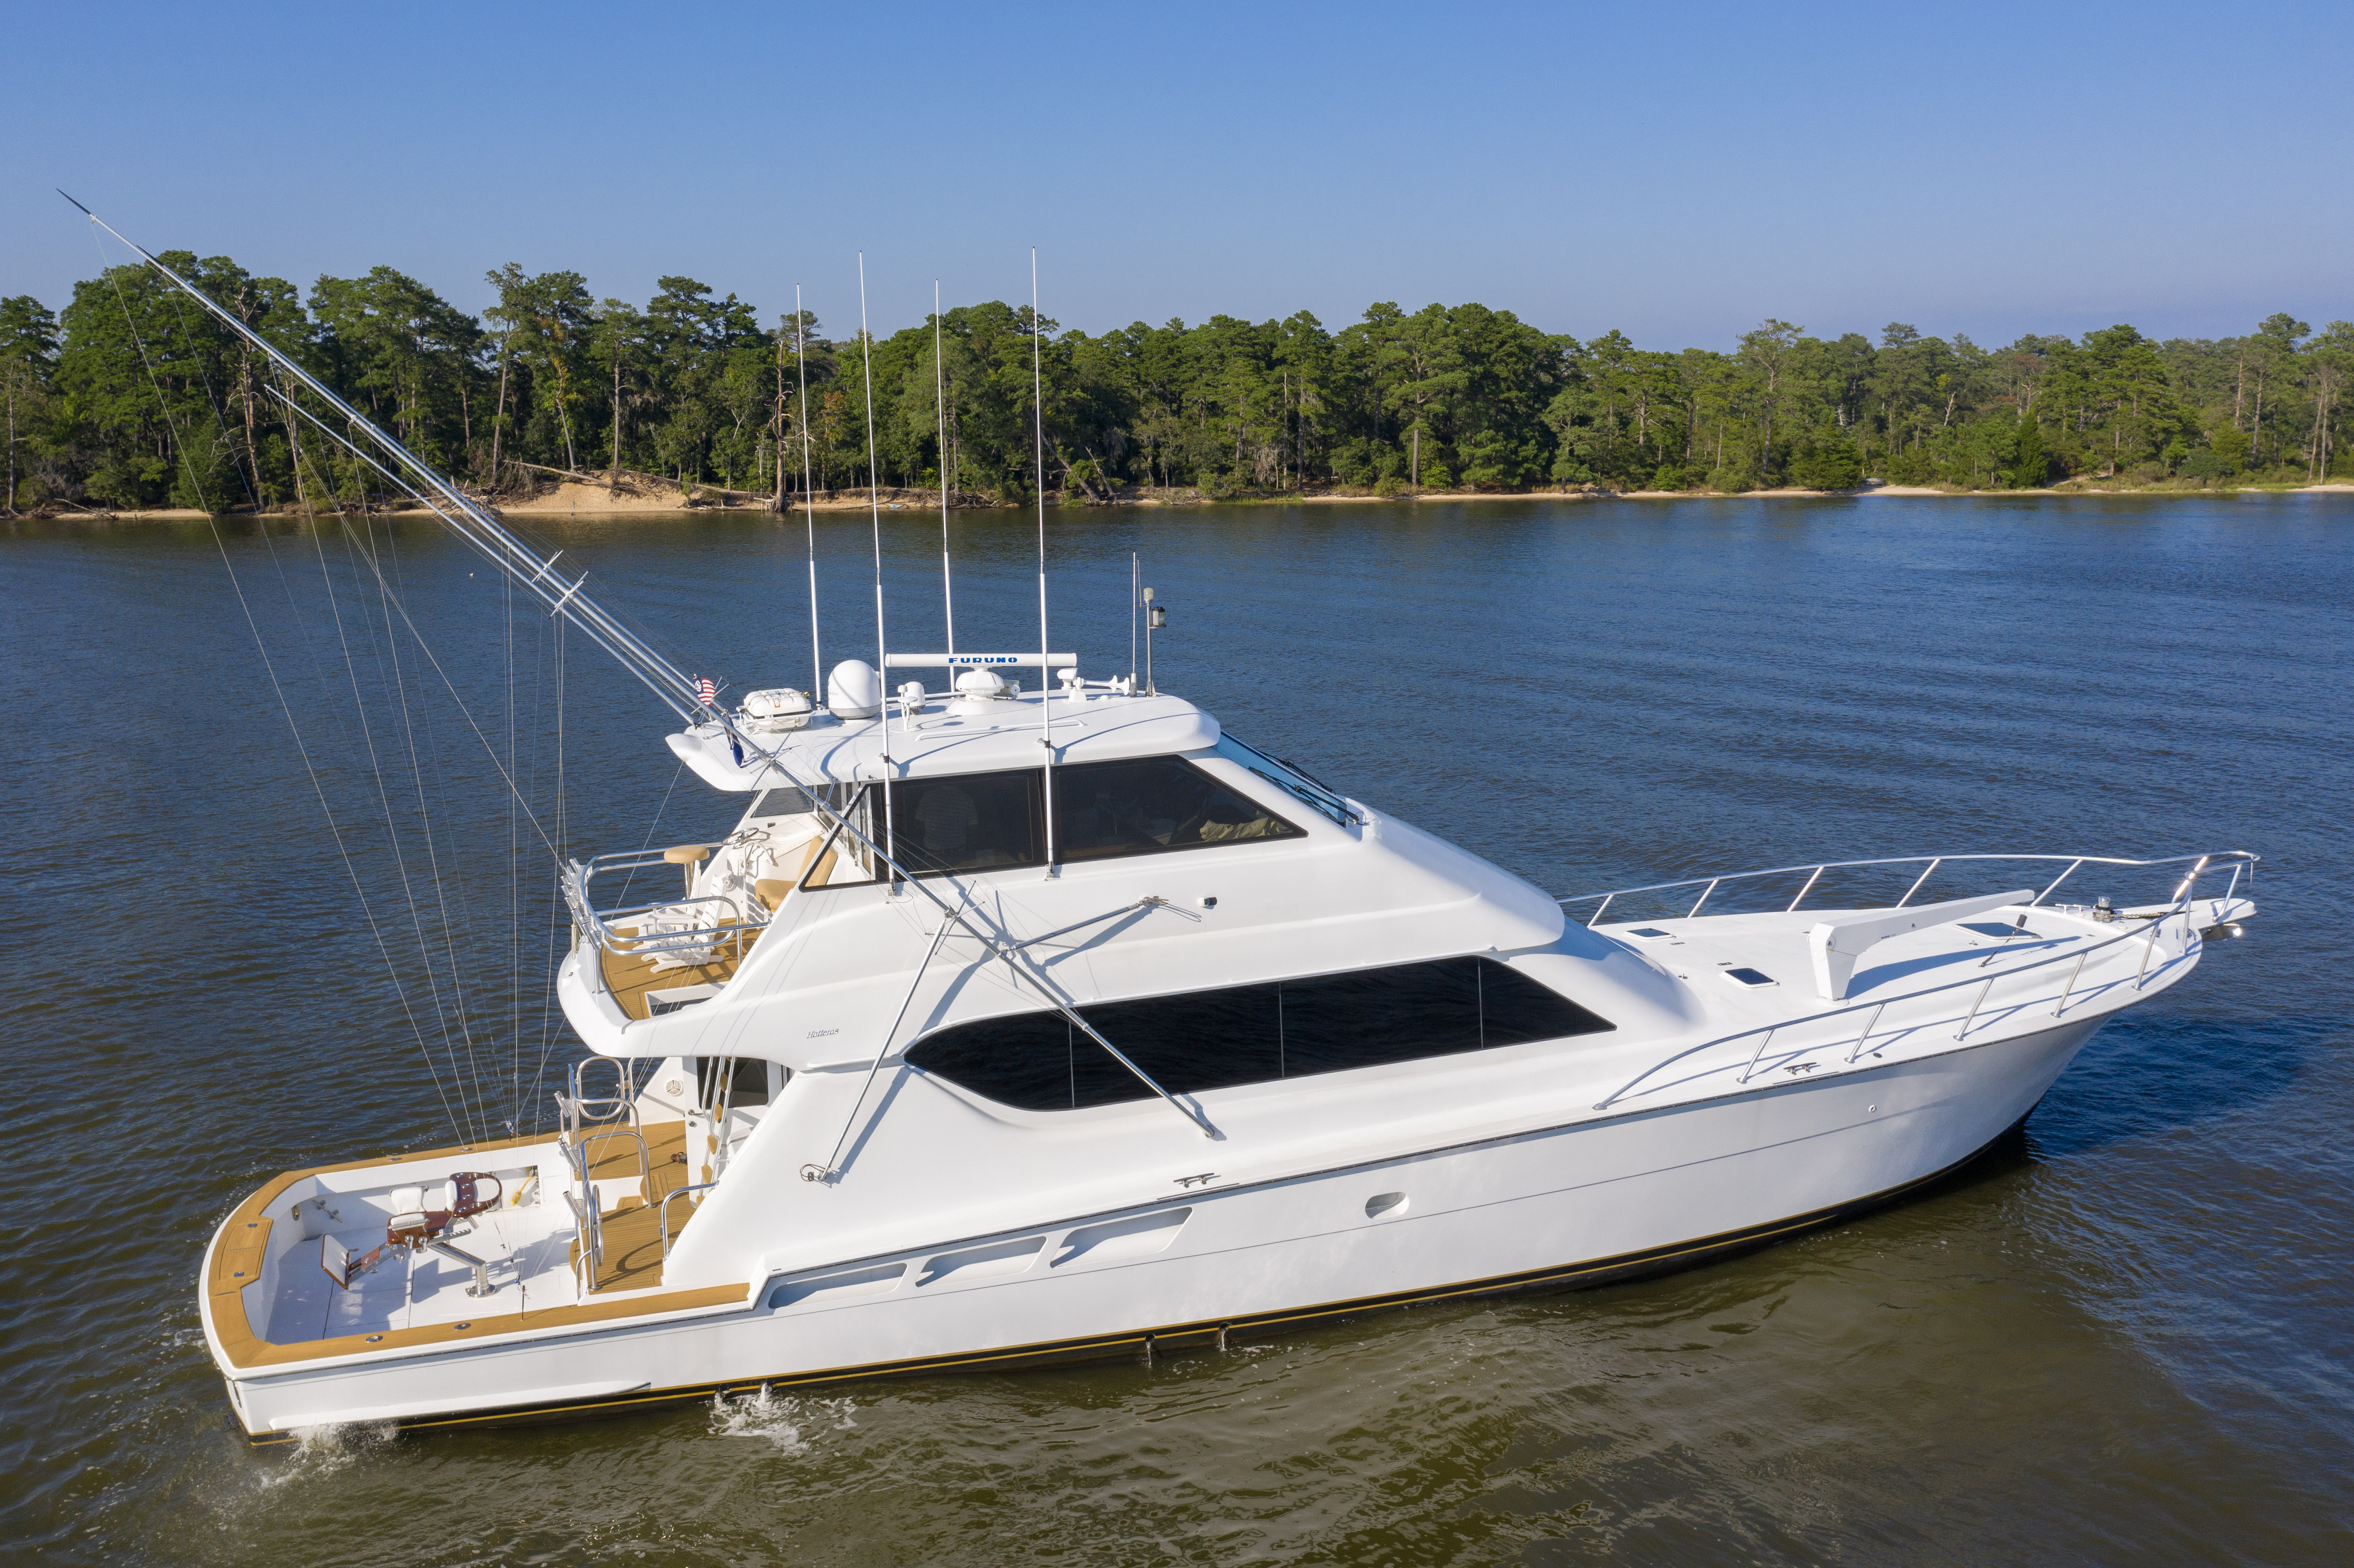 Hatteras 70 Enclosed bridge convertible Hatteras 70 Enclosed Bridge Convertible Profile